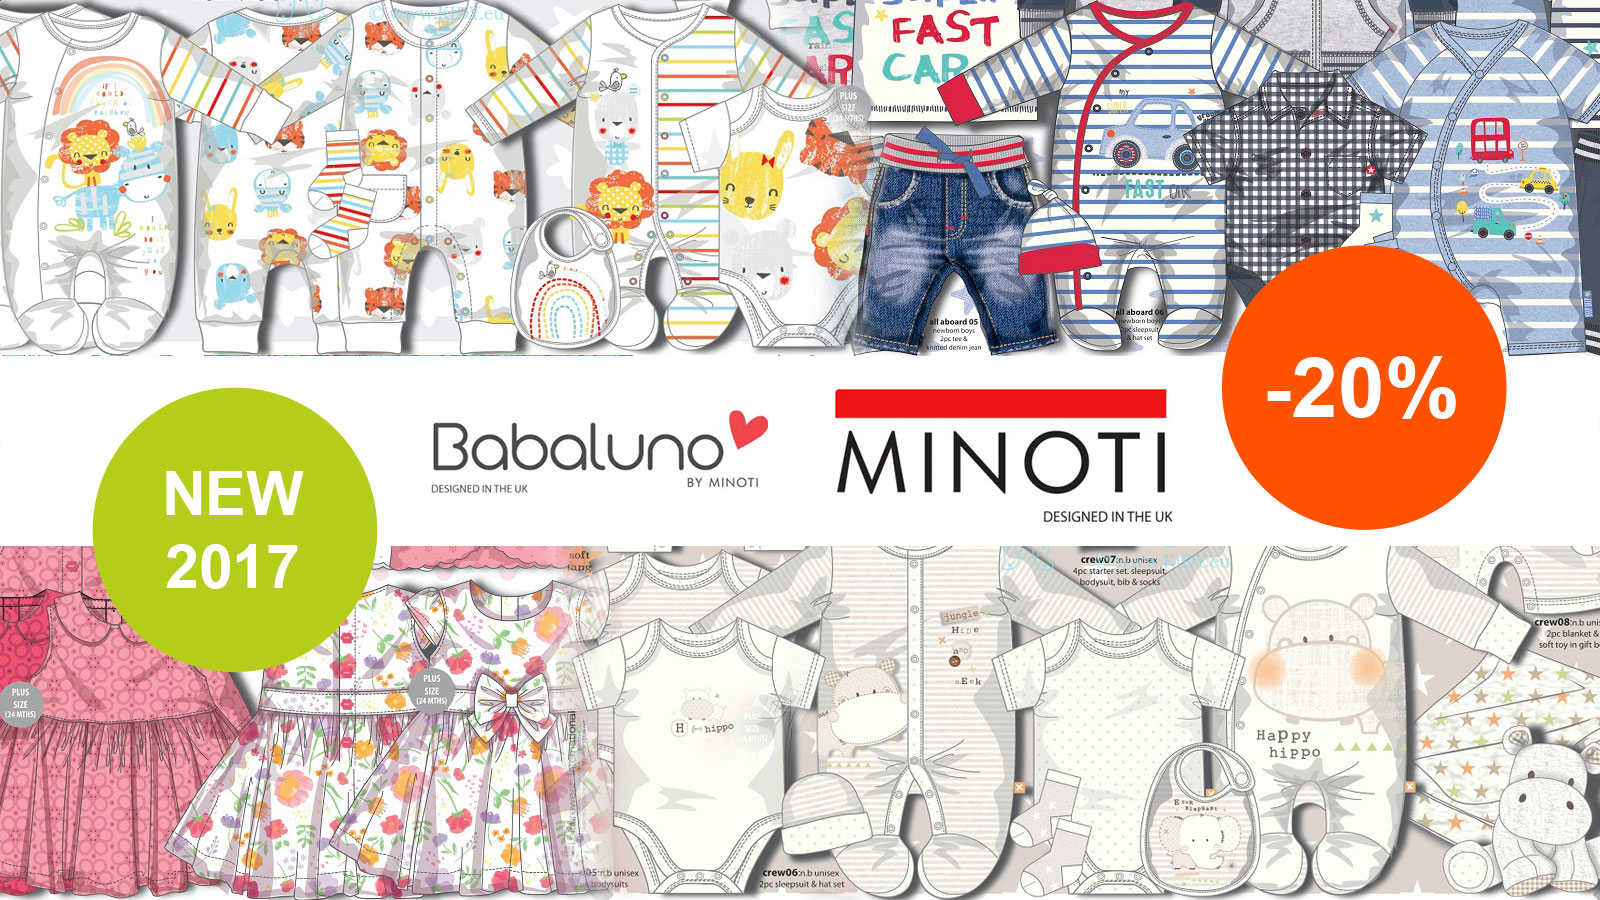 New MINOTI collection Spring/Summer 2017